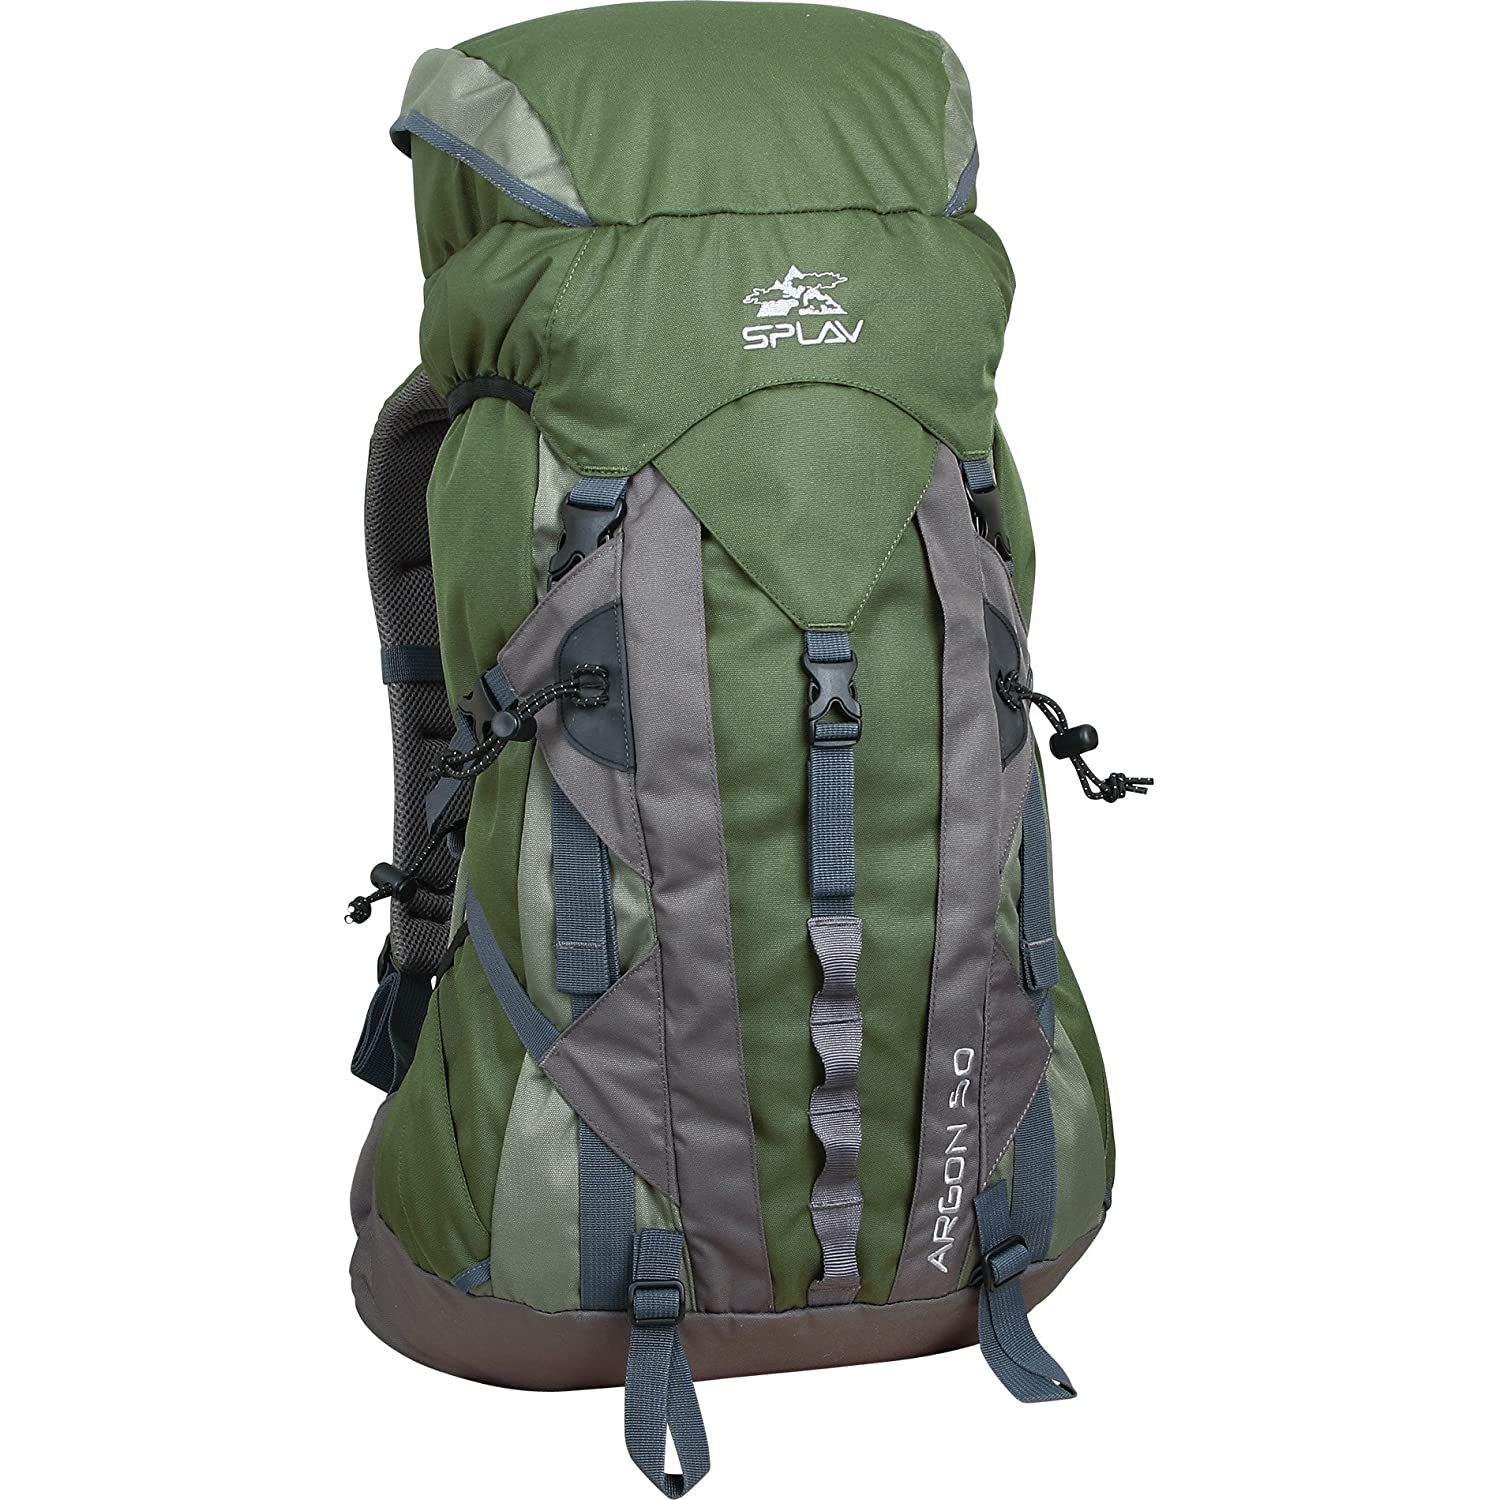 Backpack Argon 50 Classical Pack Designed for Alpine Adventures & Mountaineering   B072Q6L2NV